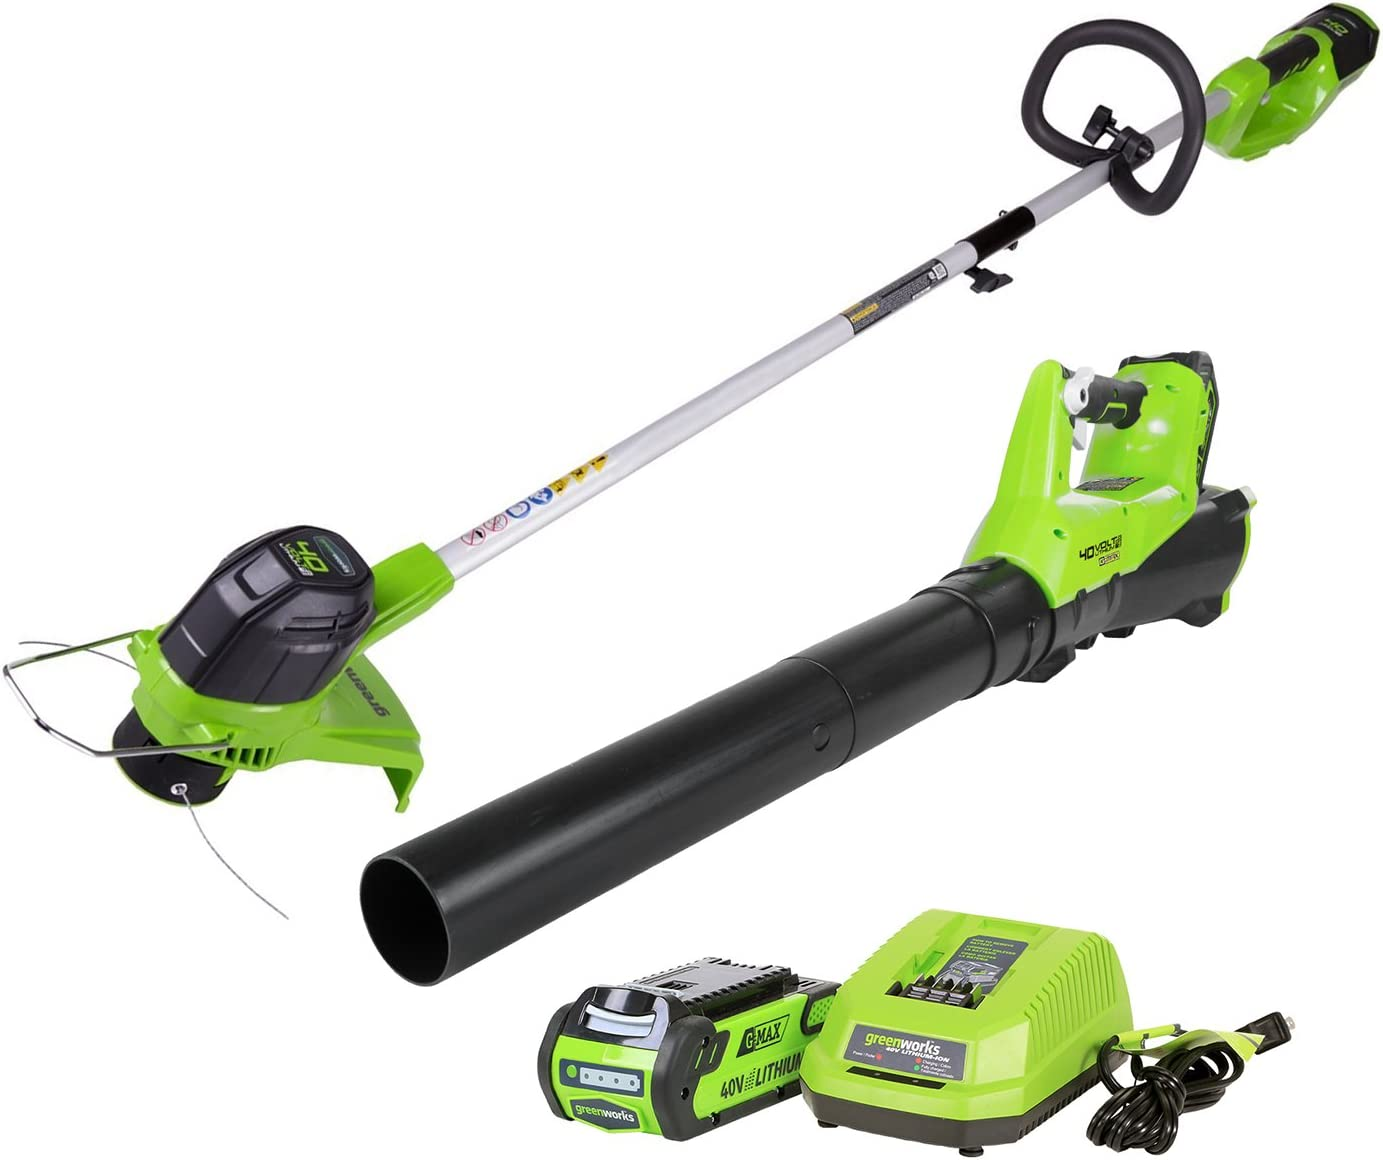 Greenworks STBA40B210 G-MAX 40V Cordless String Trimmer and Leaf Blower Combo Pack, 2.0Ah Battery and Charger Included : Garden & Outdoor